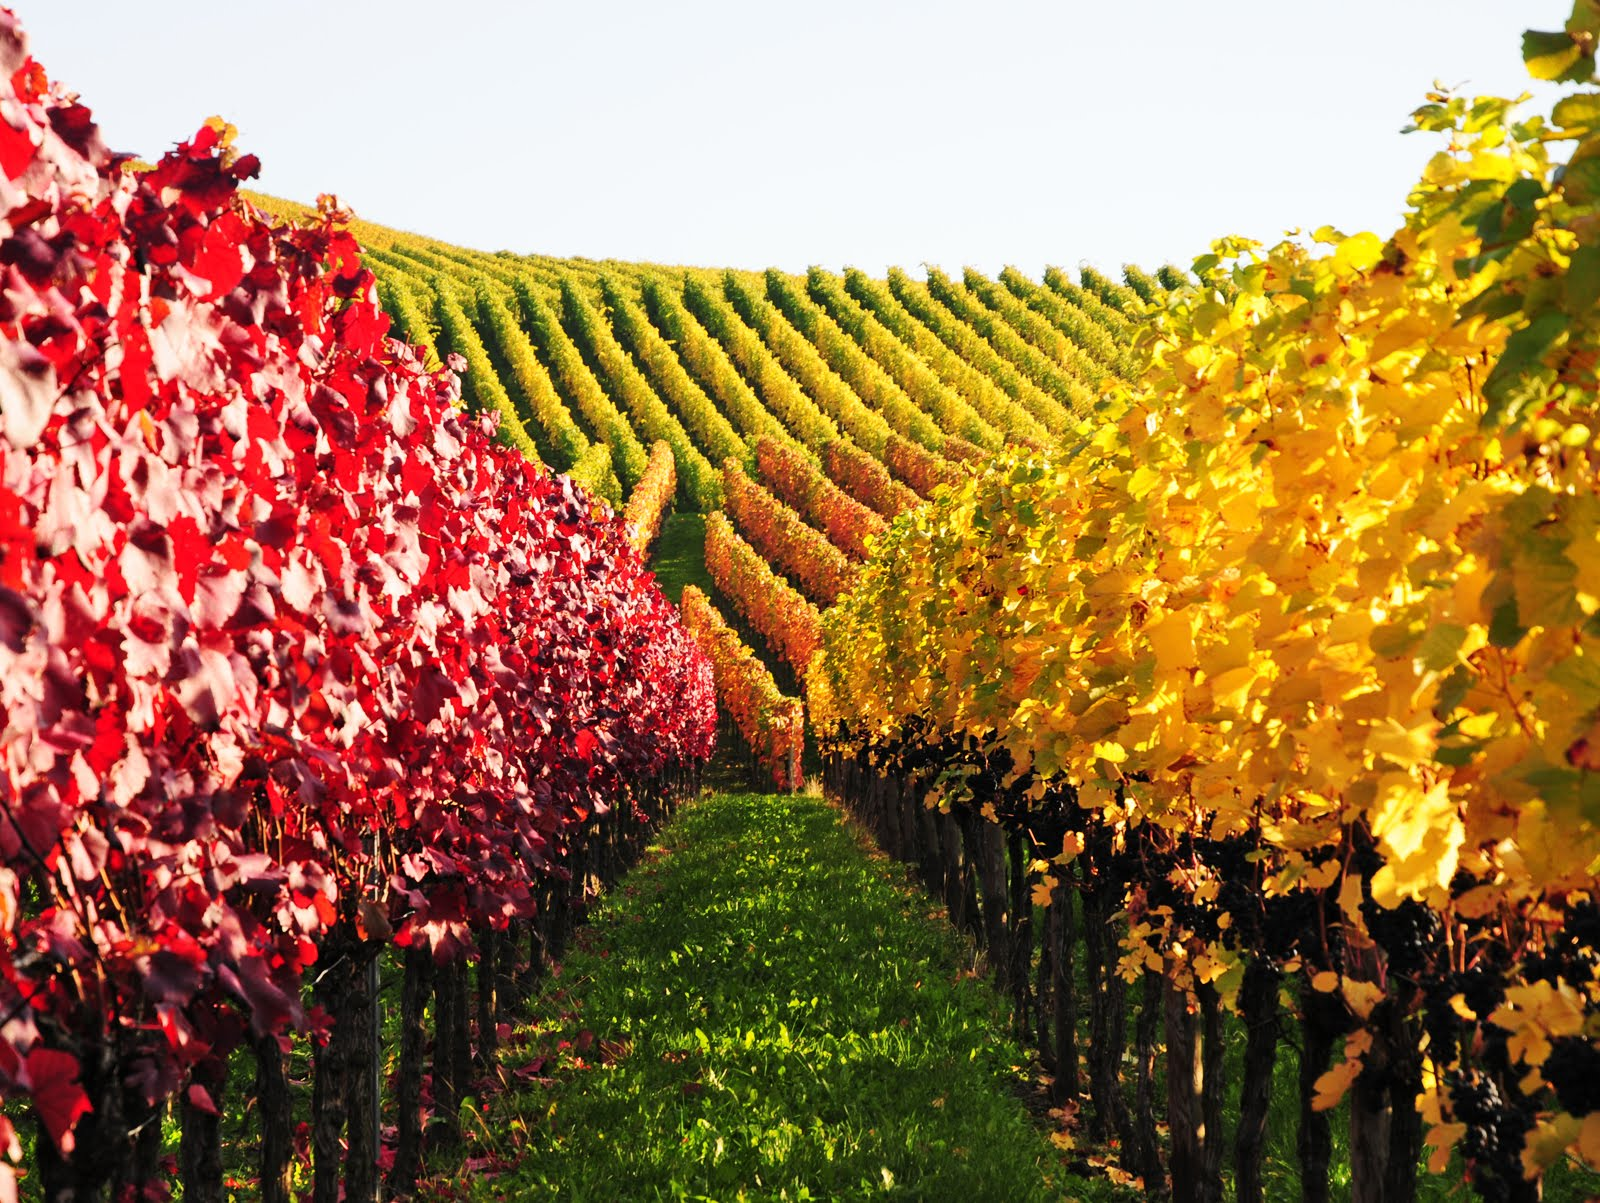 vineyard-in-germany_autumn-colors.jpg